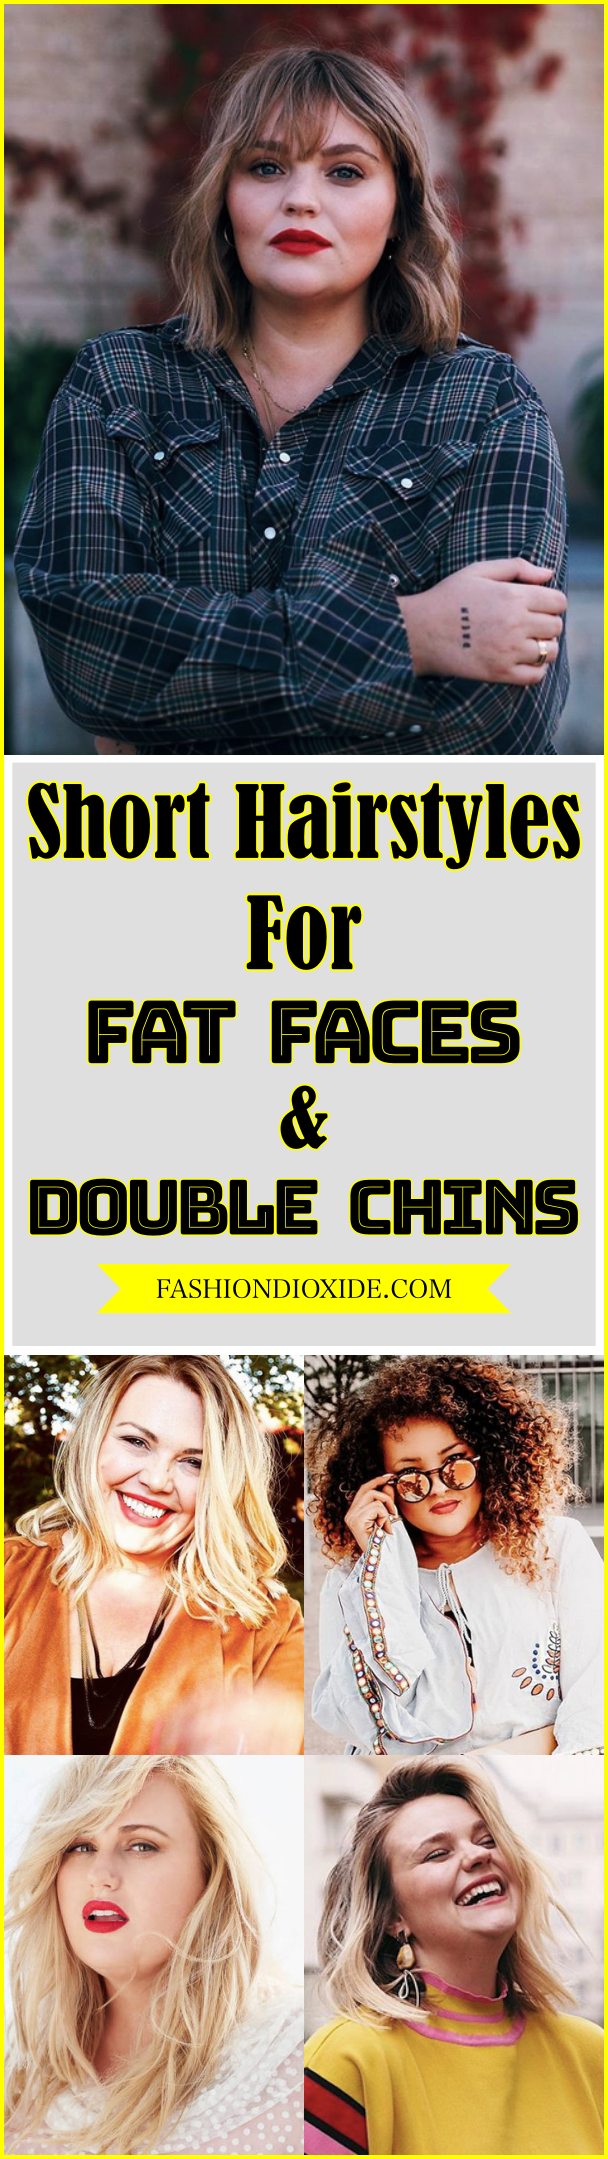 Short-Hairstyles-for-Fat-Faces-Double-Chins